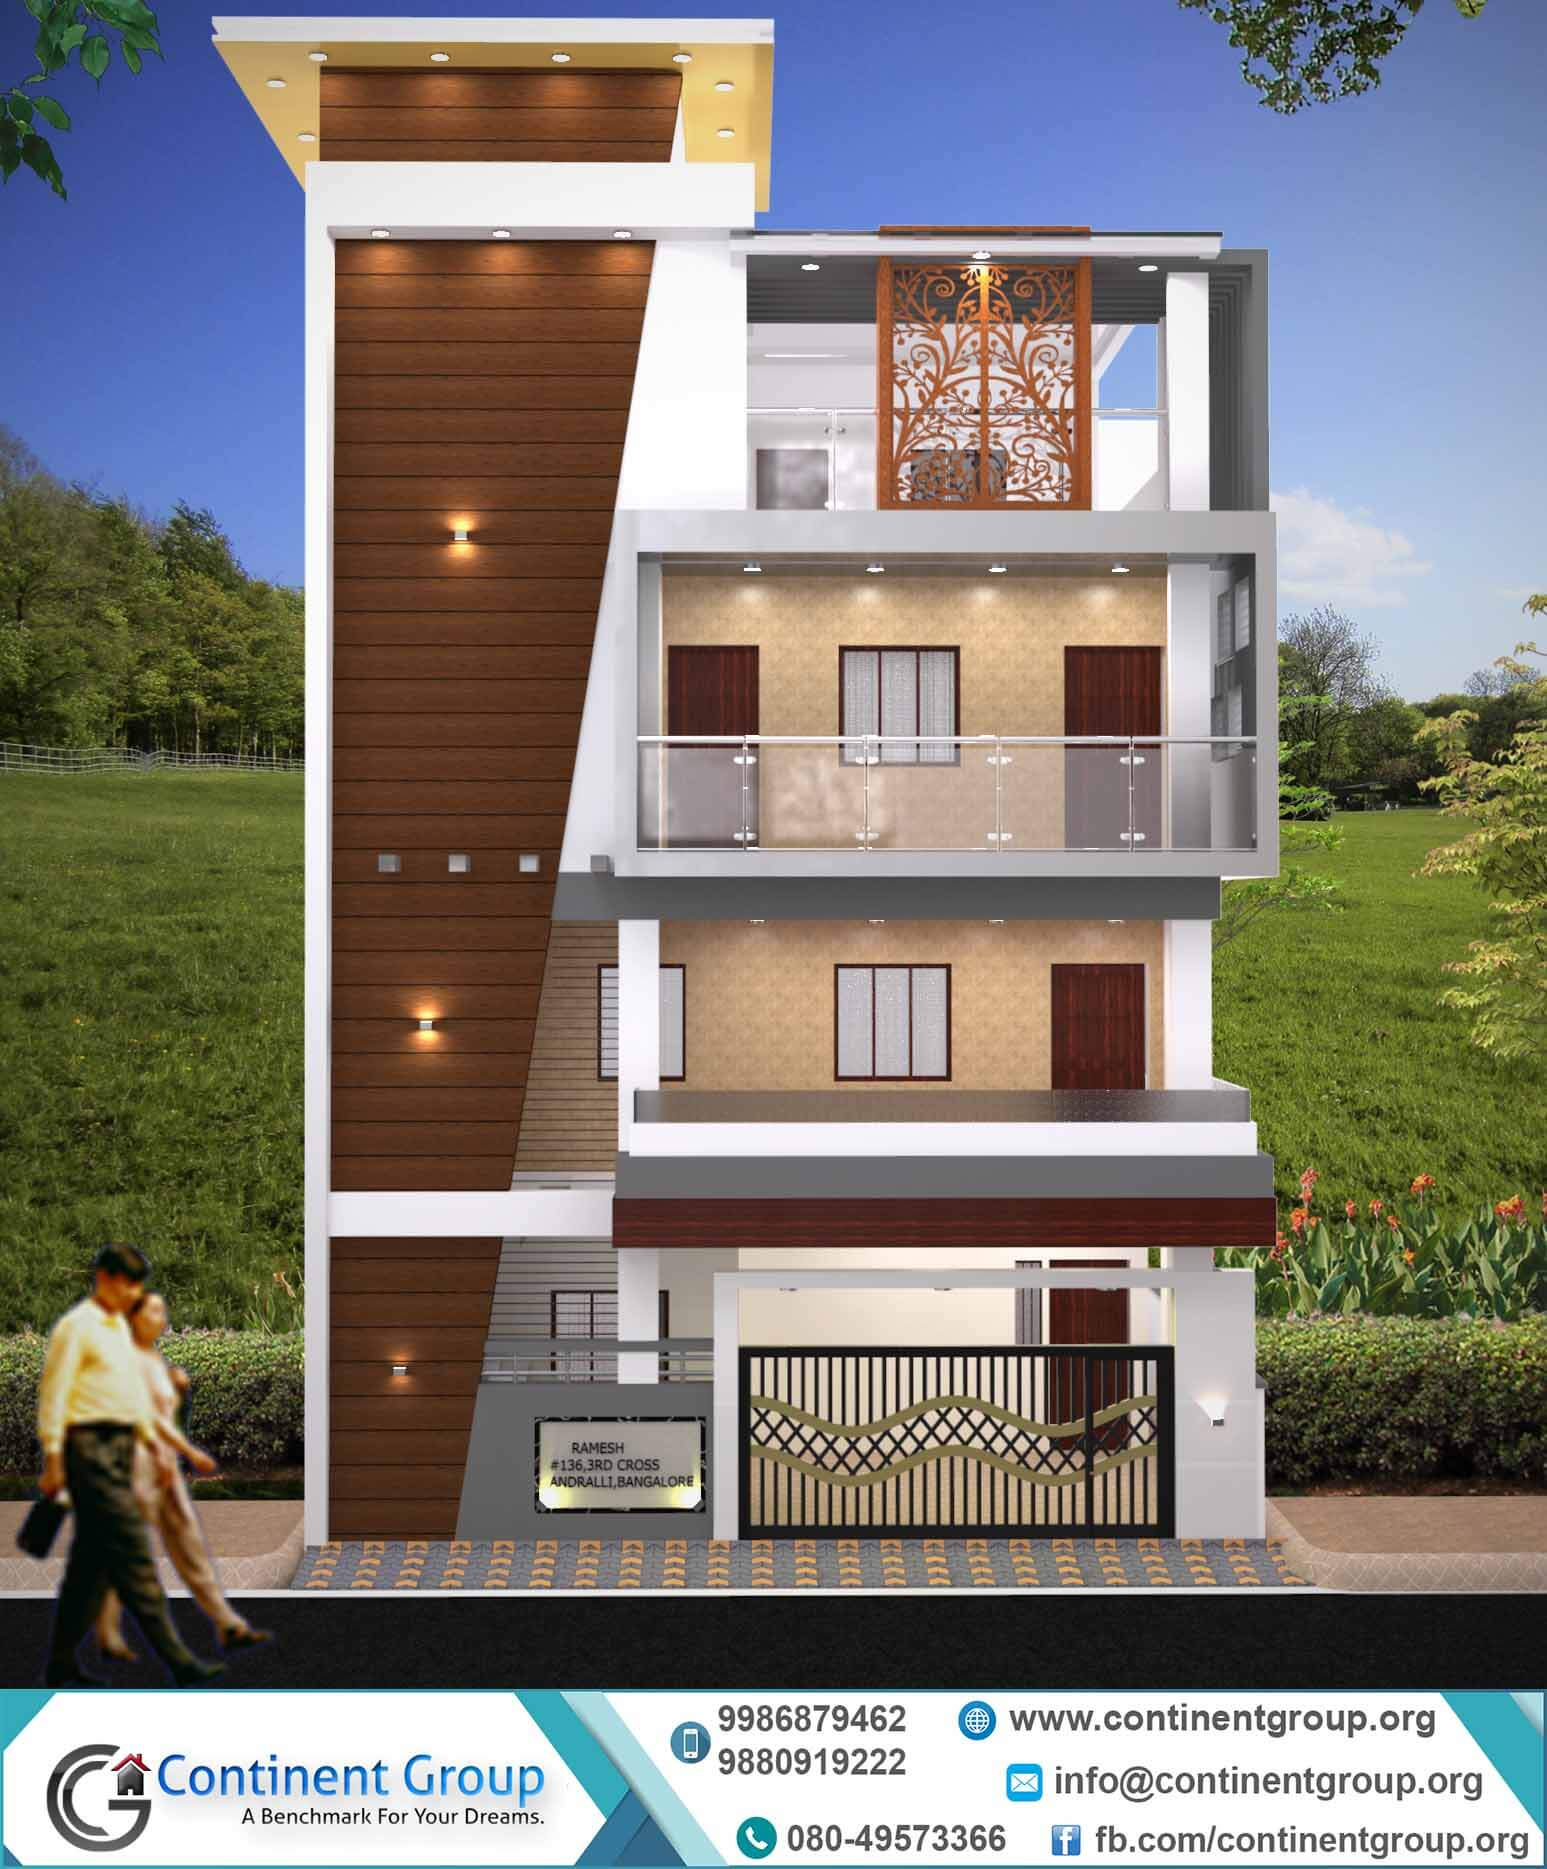 2 Storey Modern House Floor Plan 3d Building Elevation 3d Front Elevation Continent Group